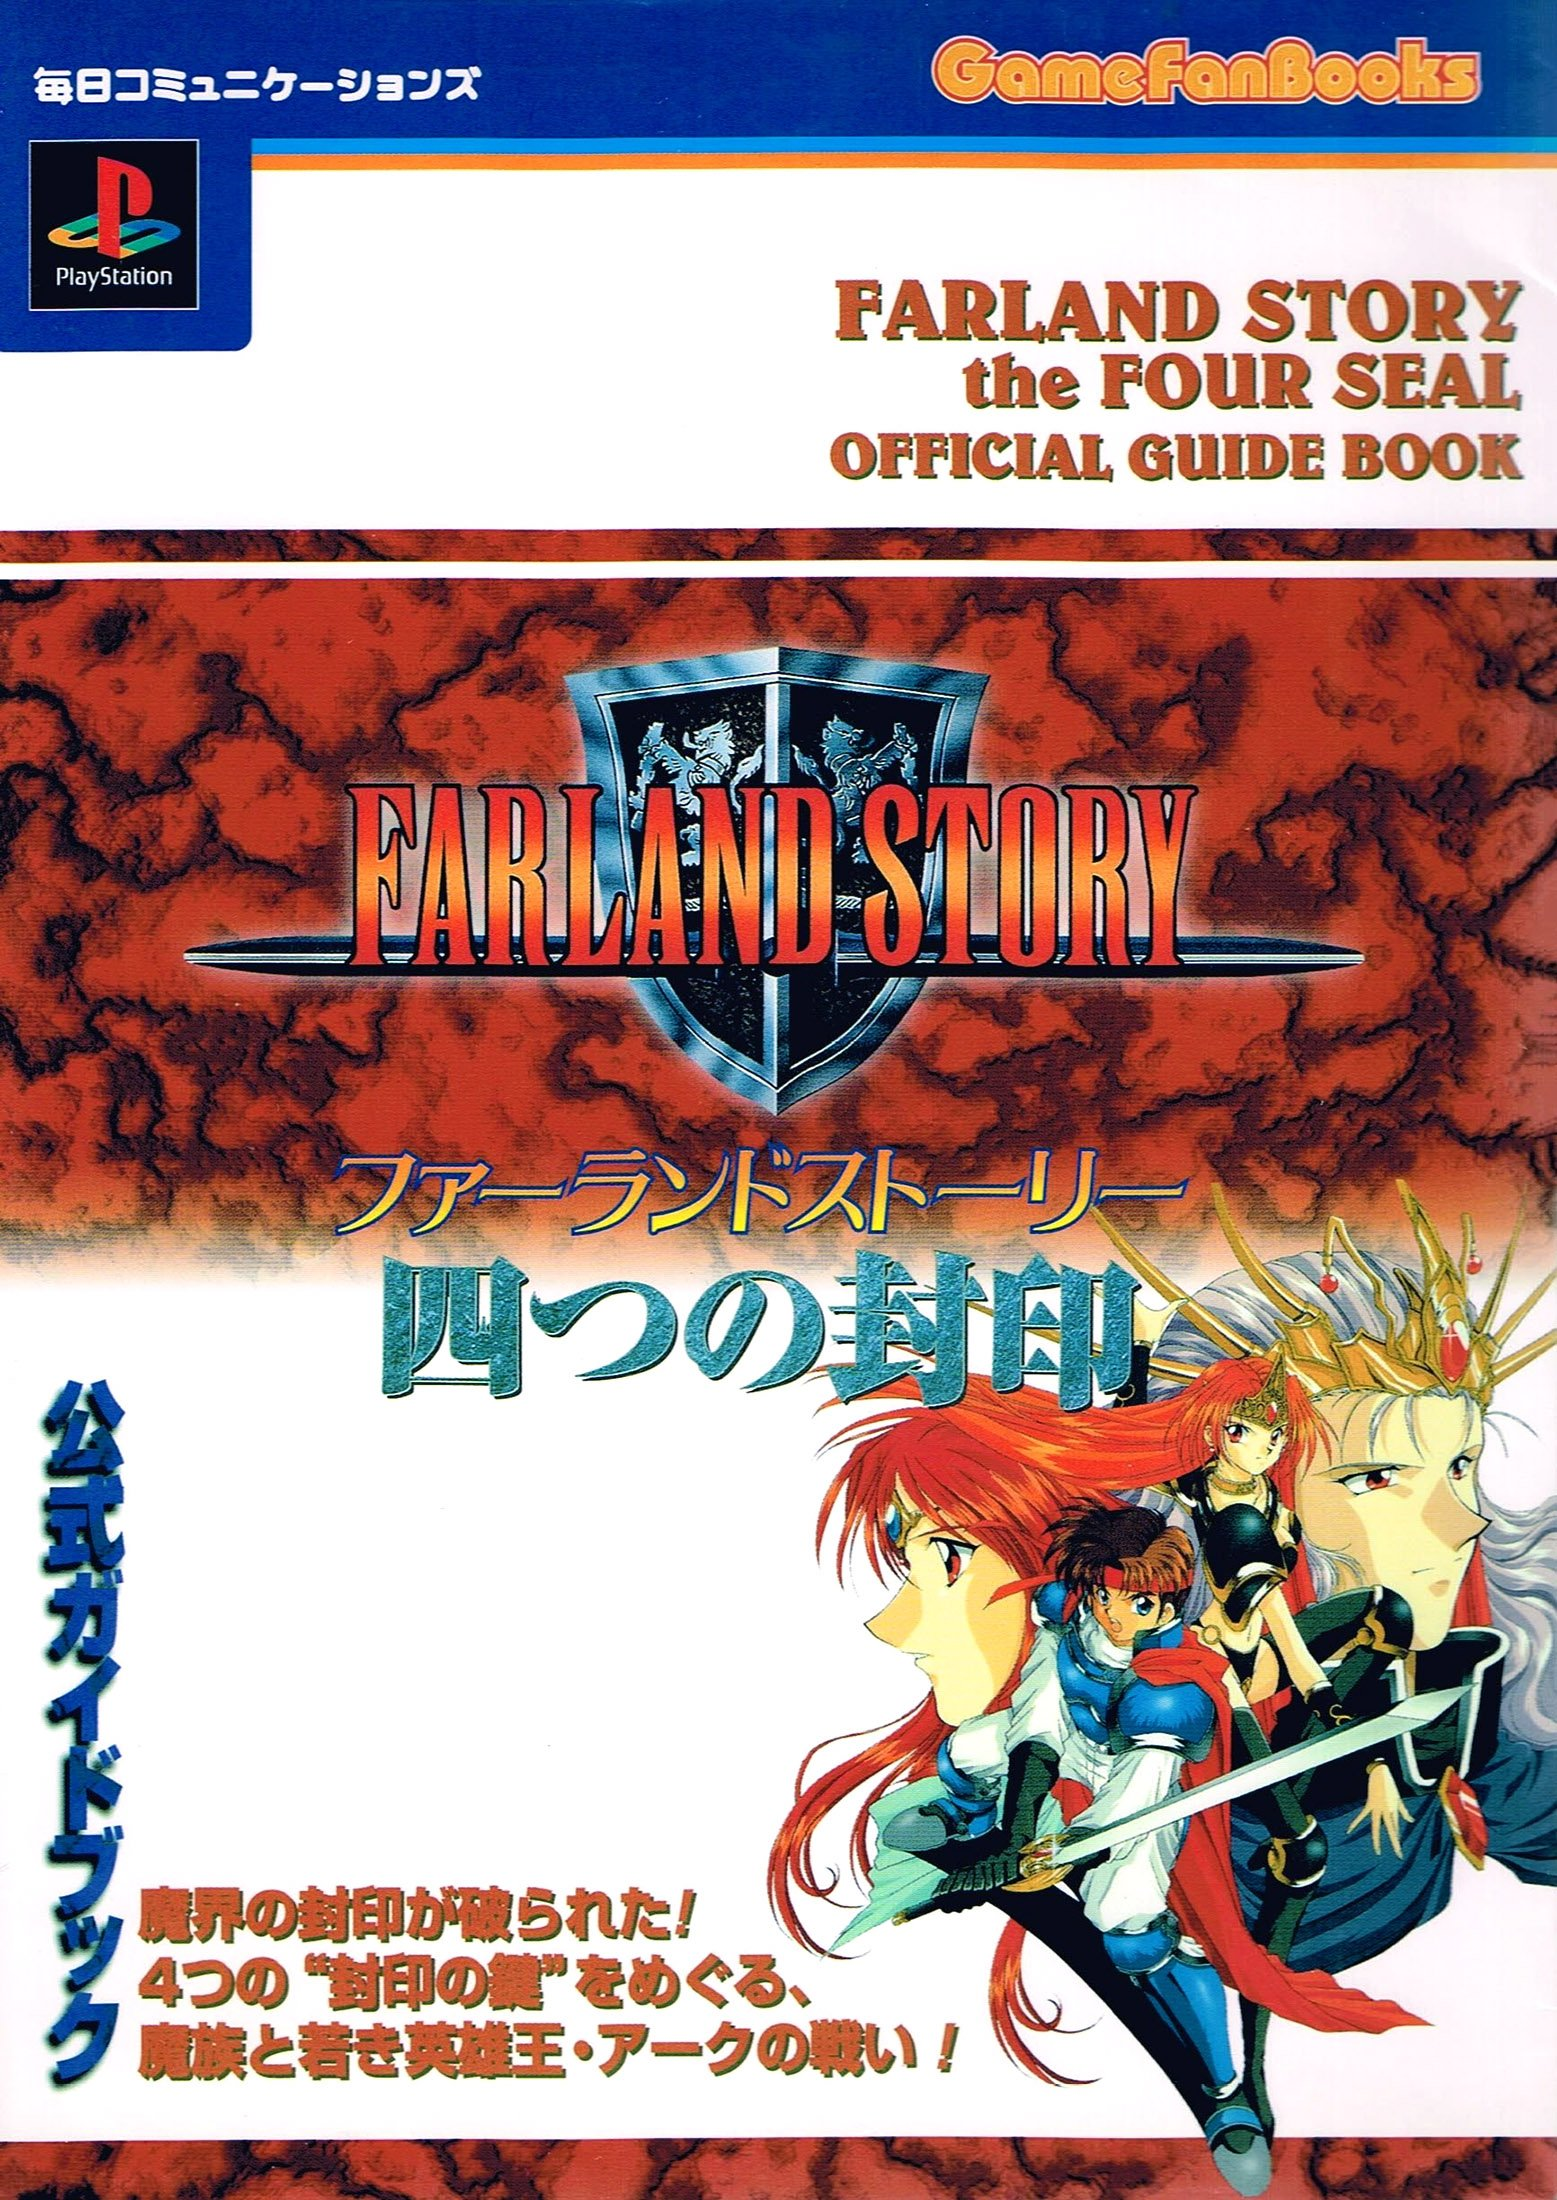 Farland Story: The Four Seals - Official Guide Book